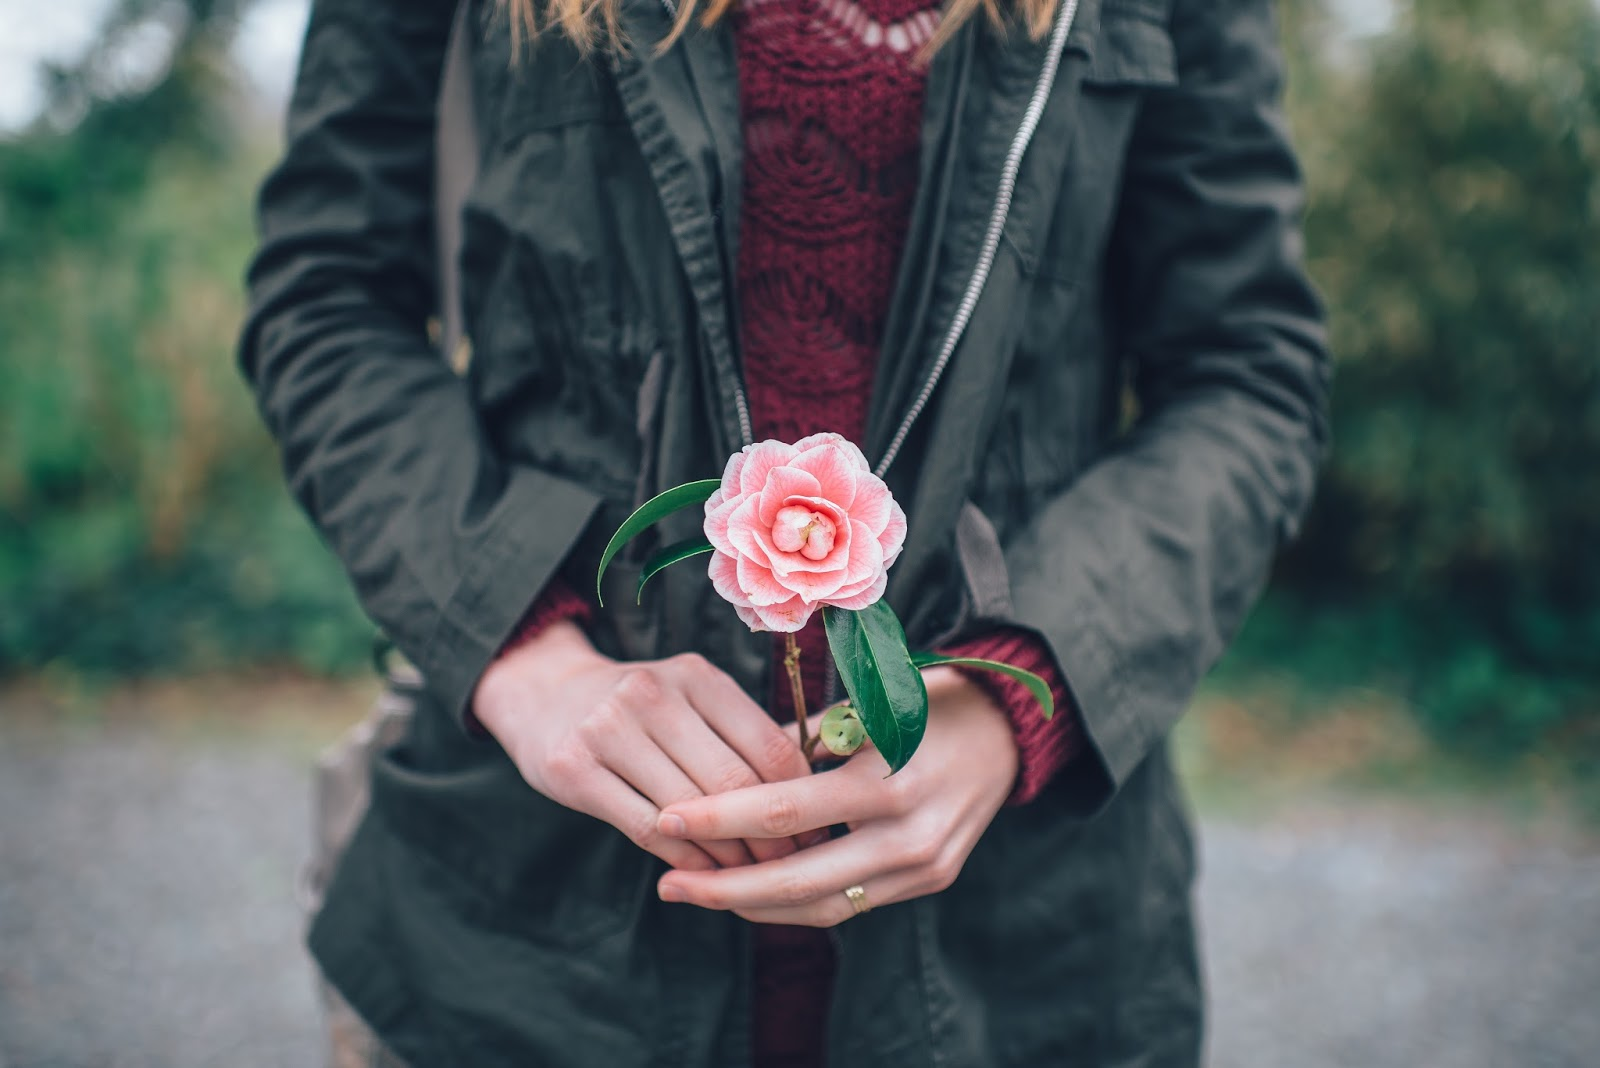 woman in black leather jacket holding pink rose